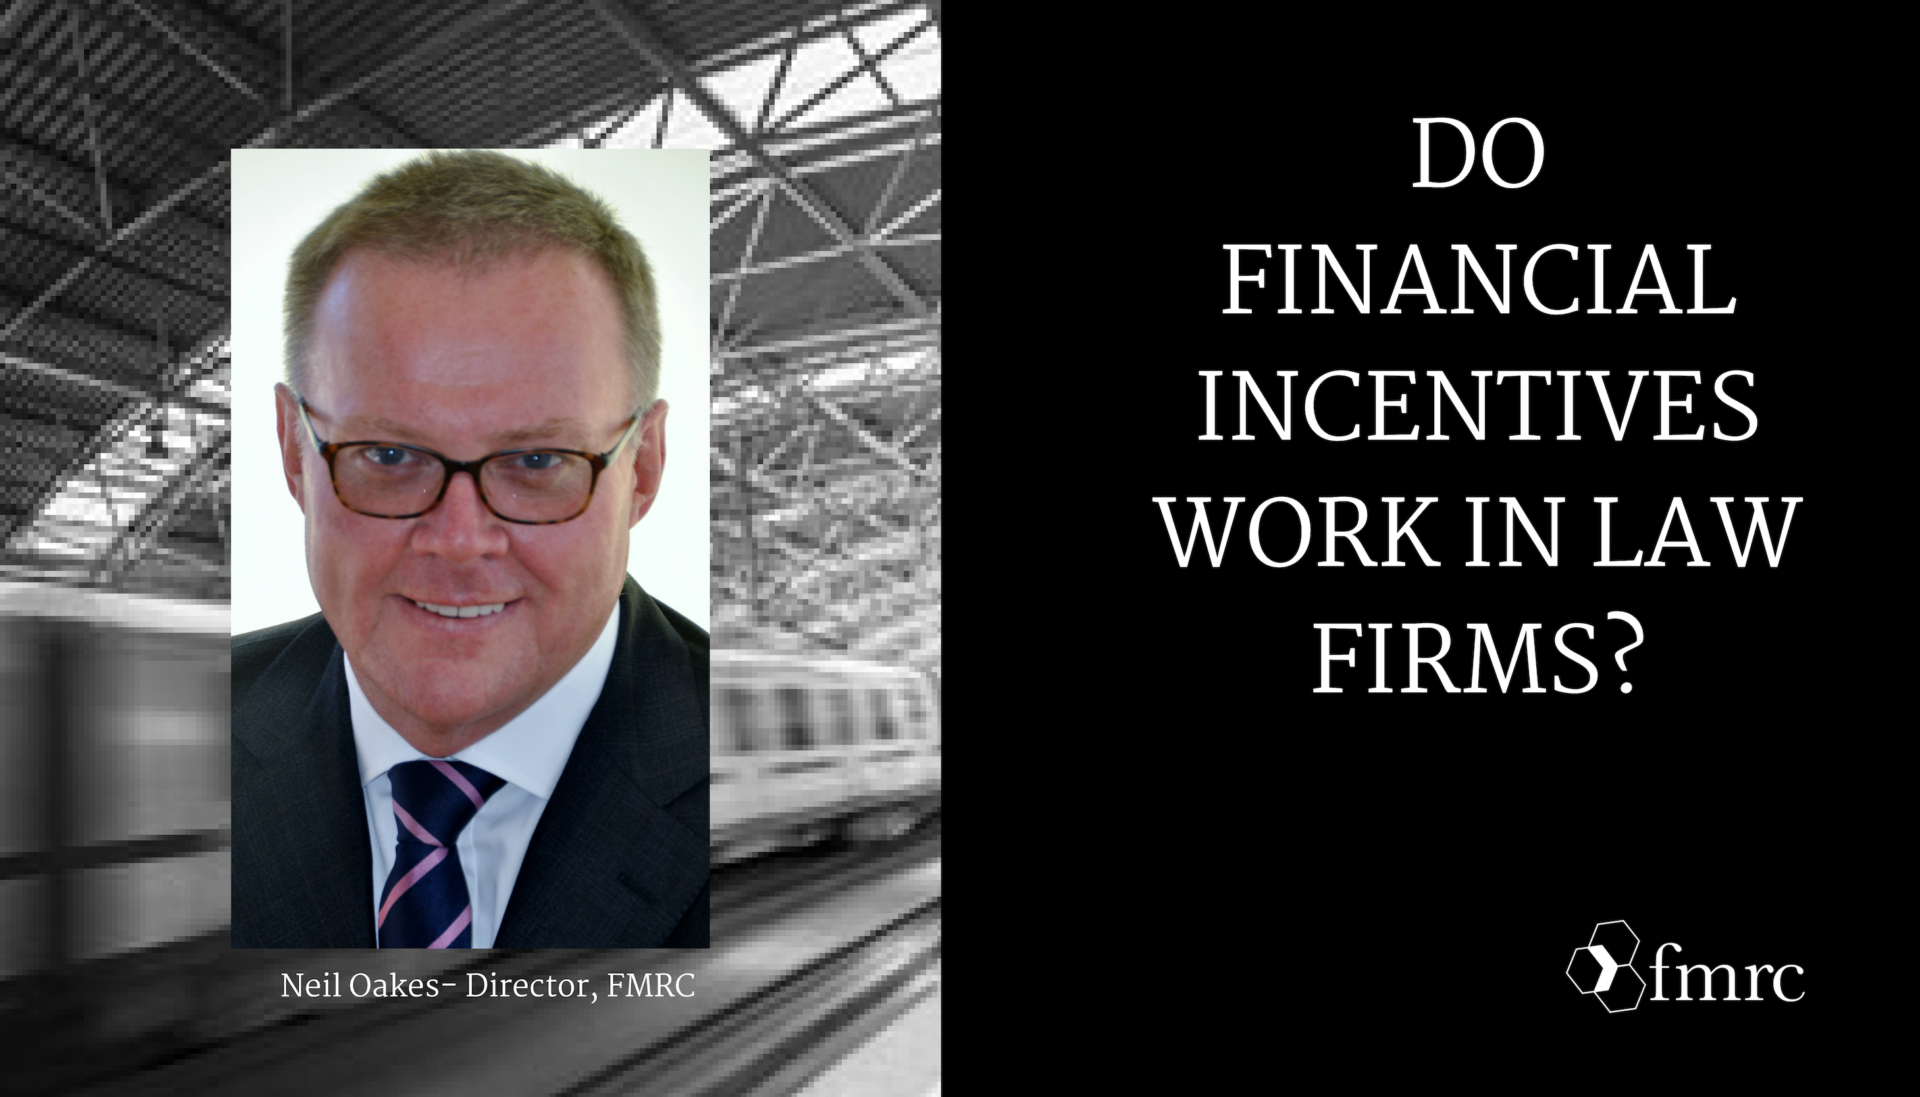 Do Financial Incentives Work in Law Firms?